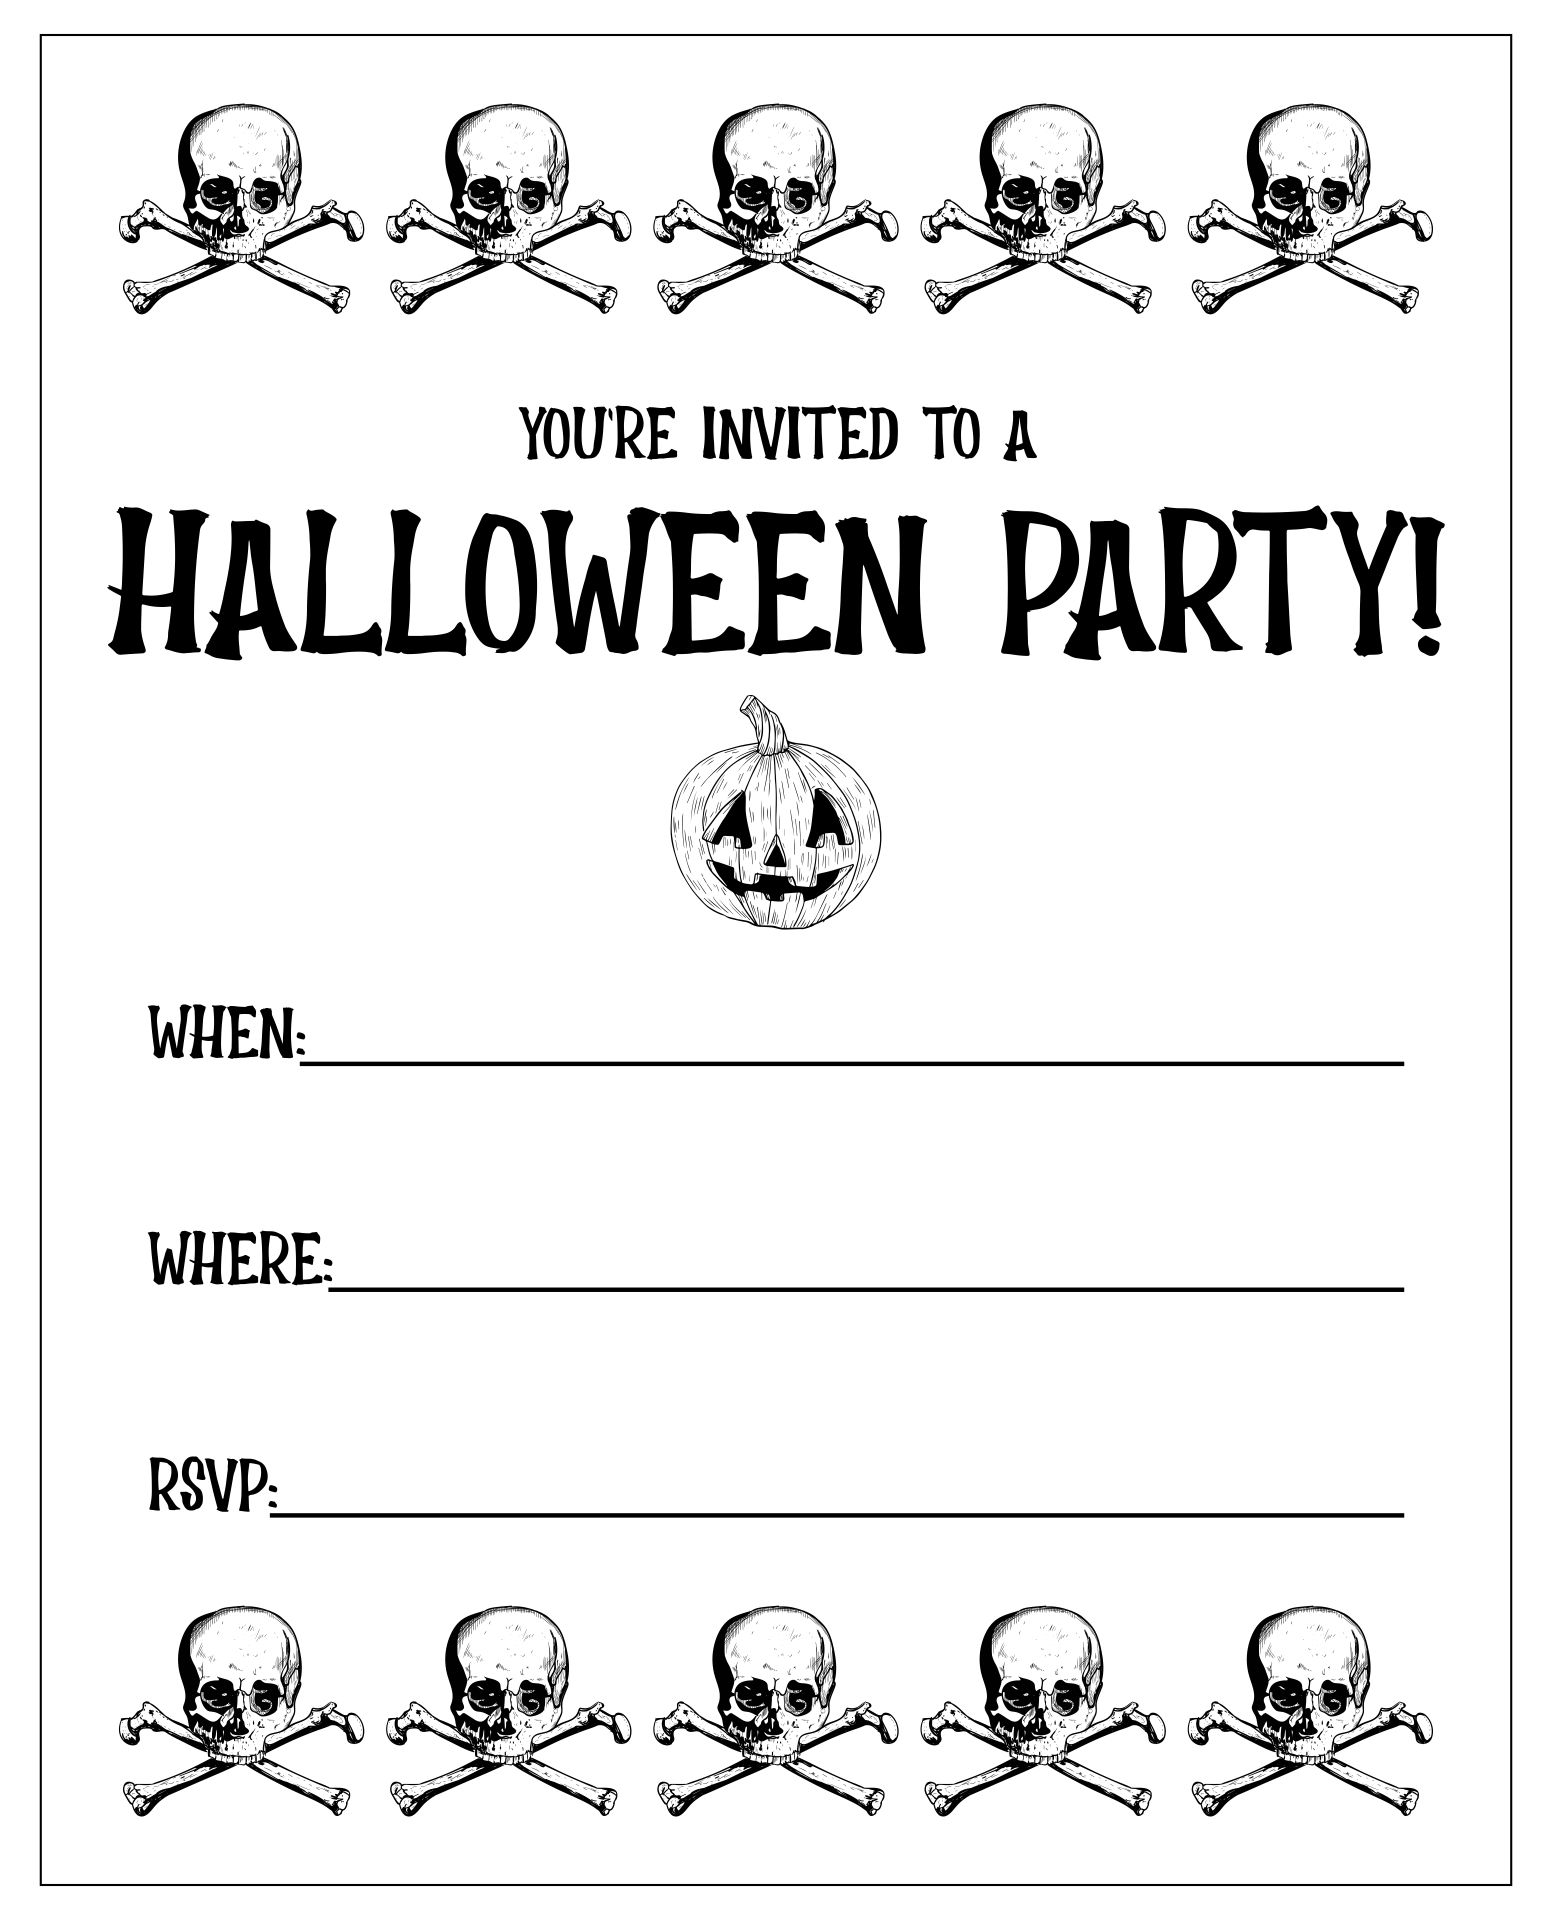 7 Images of Happy Halloween Printable Party Invites